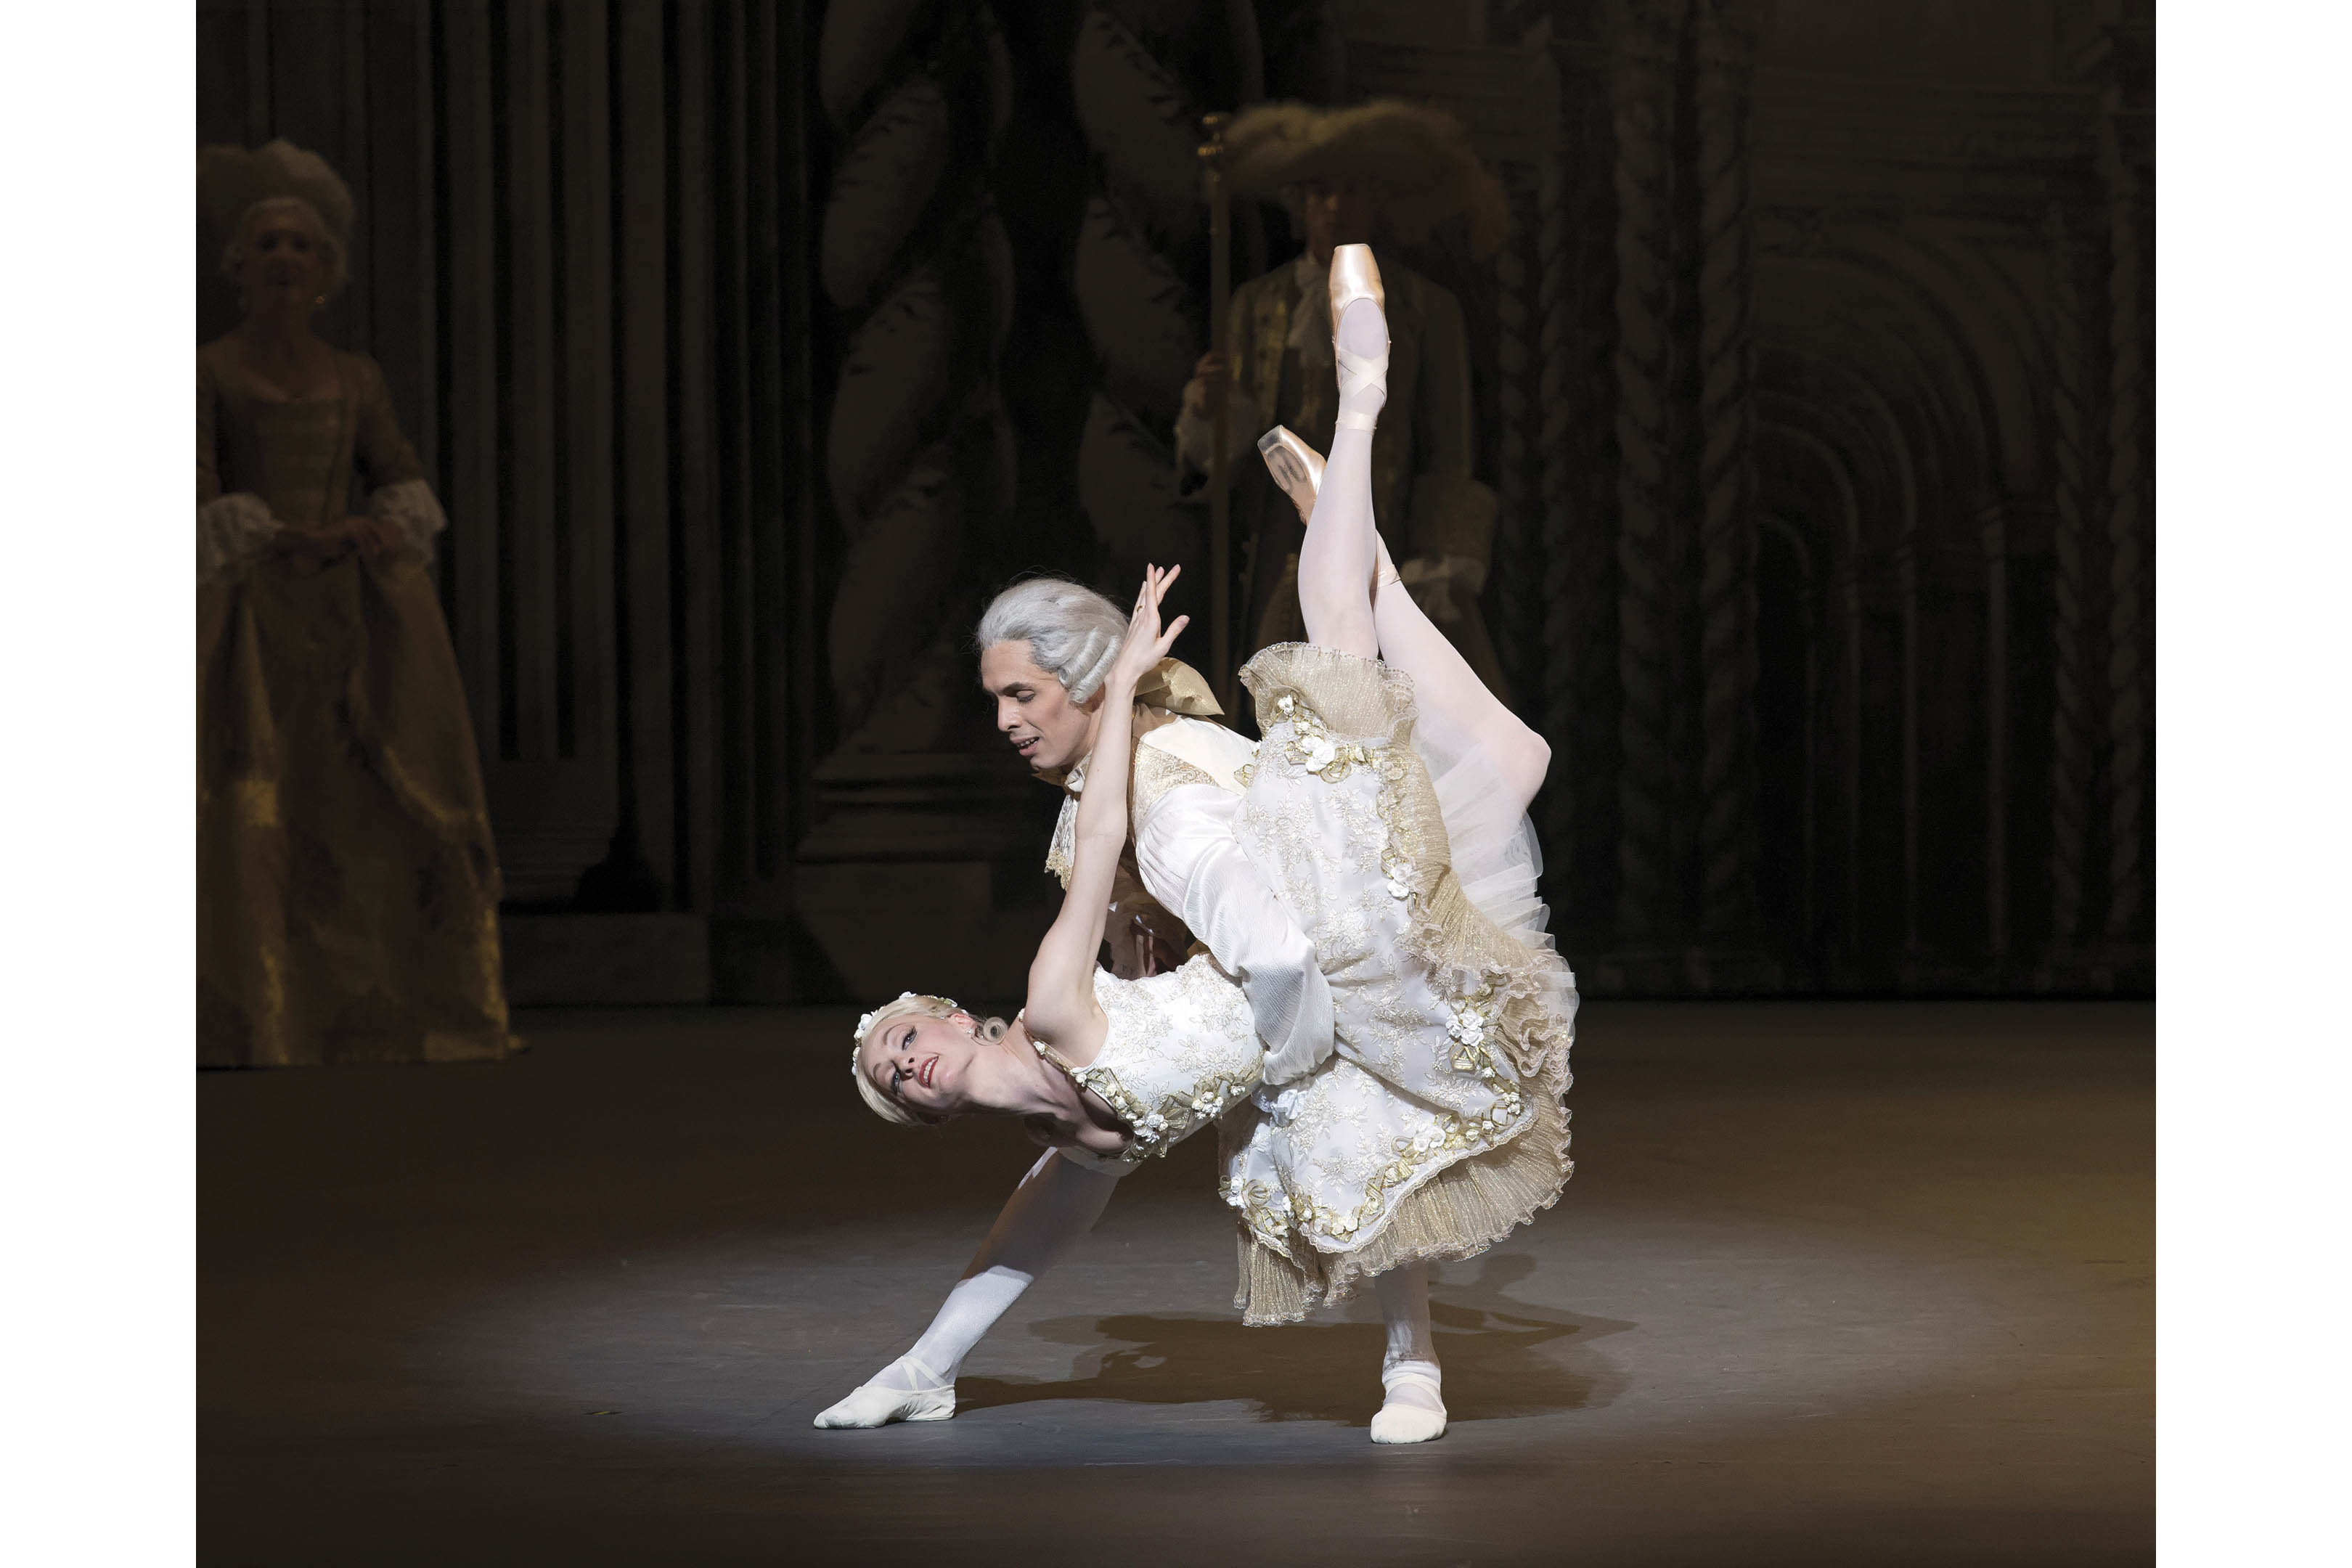 Gillian Murphy (Princess Aurora) and Alexandre Hammoudi (Prince Désiré) in Alexei Ratmansky's The Sleeping Beauty. (Photo: Gene Schiavone)